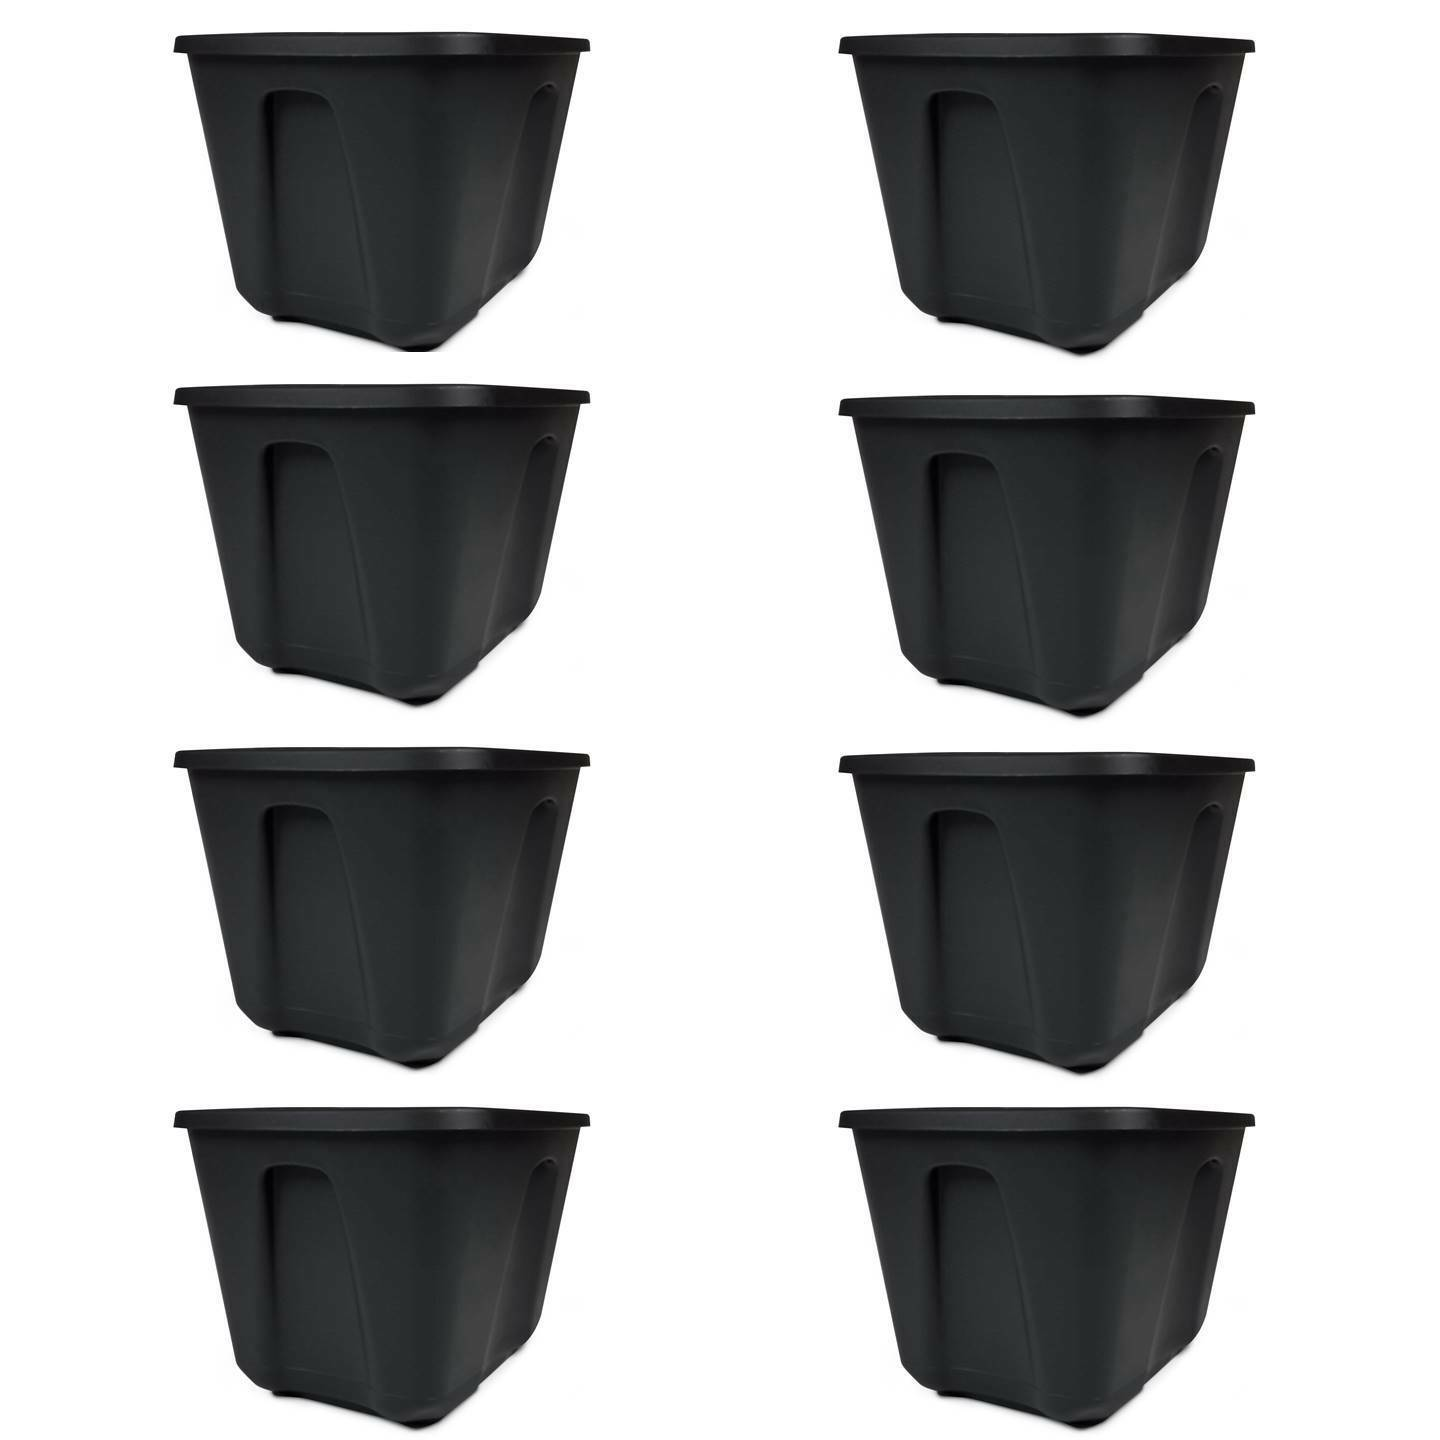 Set of 8 Storage Containers 18- Gallon Lid Snaps Durable Pla